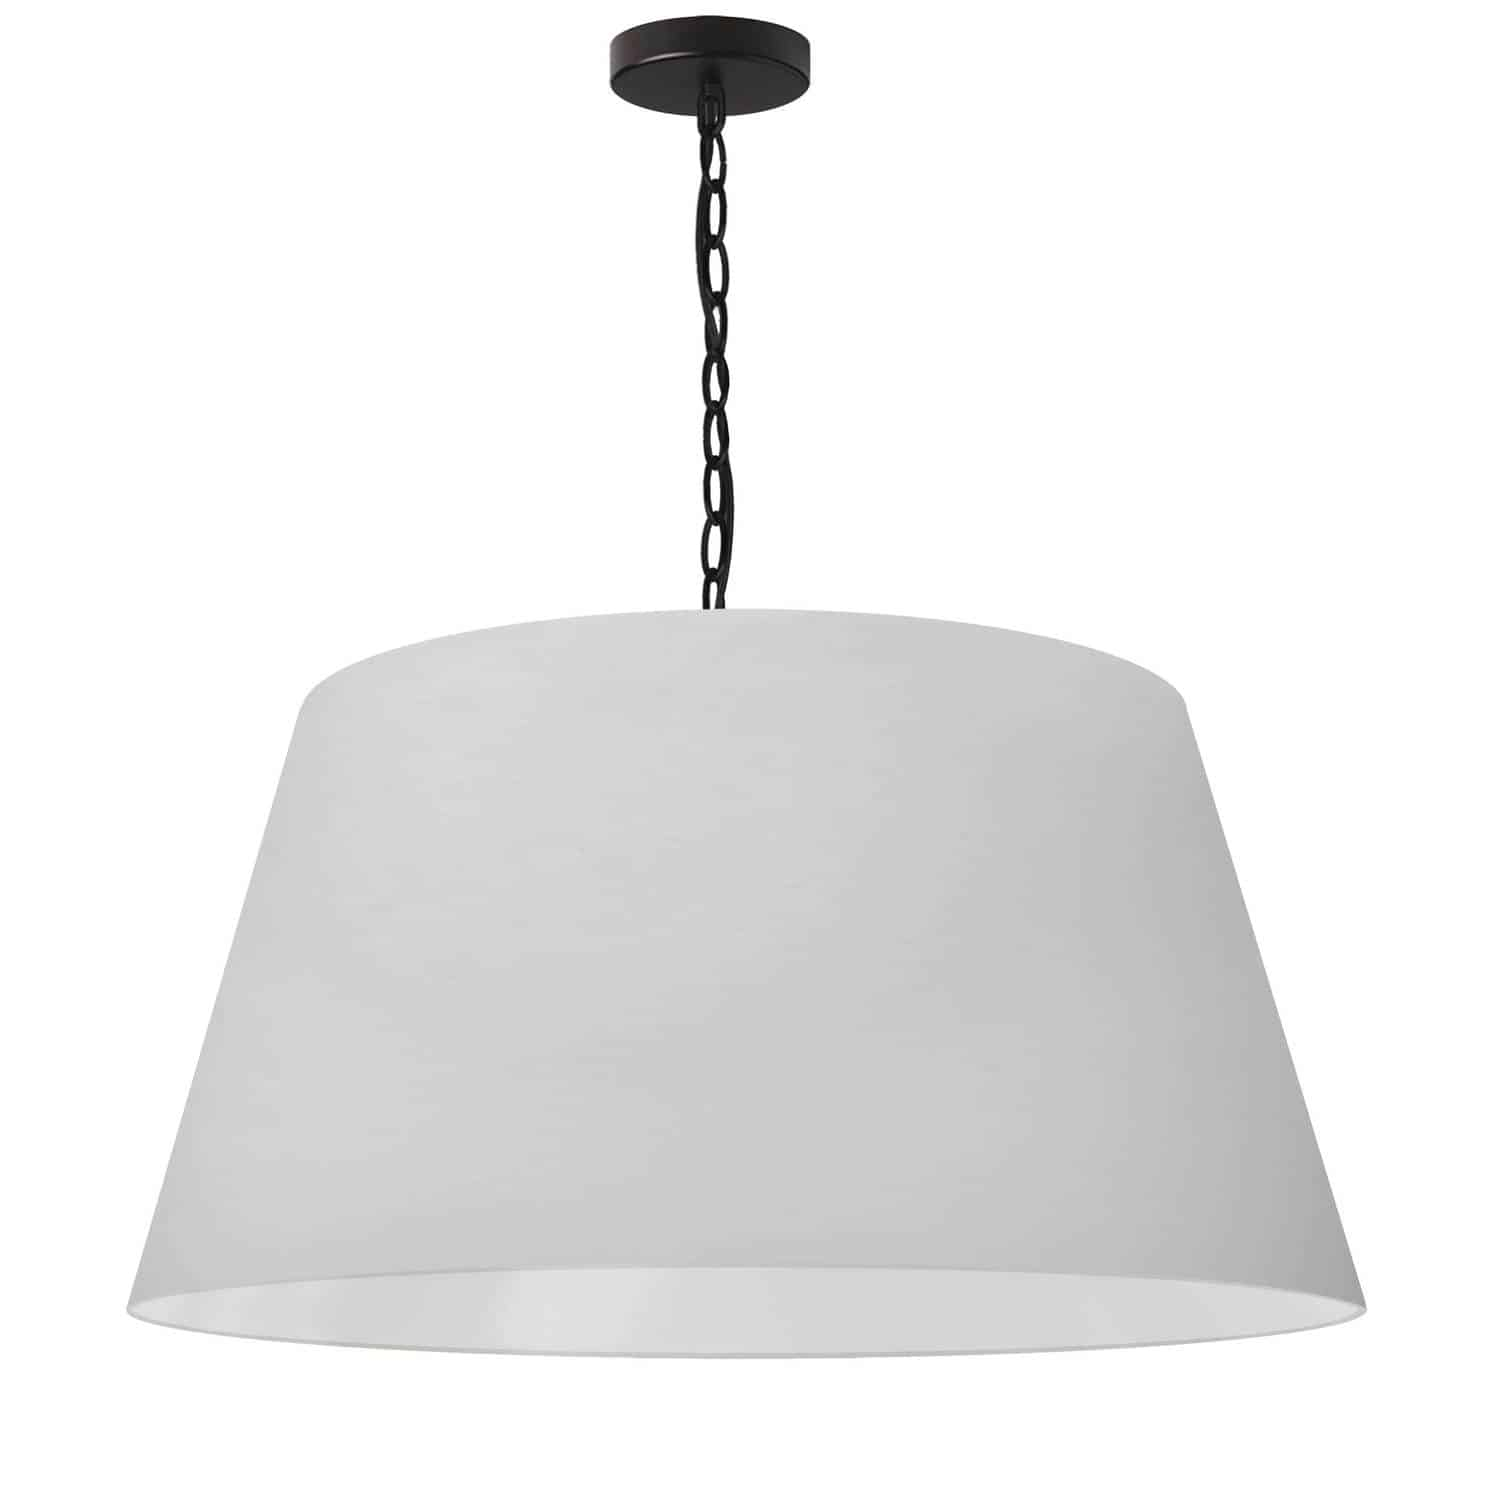 1 Light Brynn Large Pendant, White Shade, Black